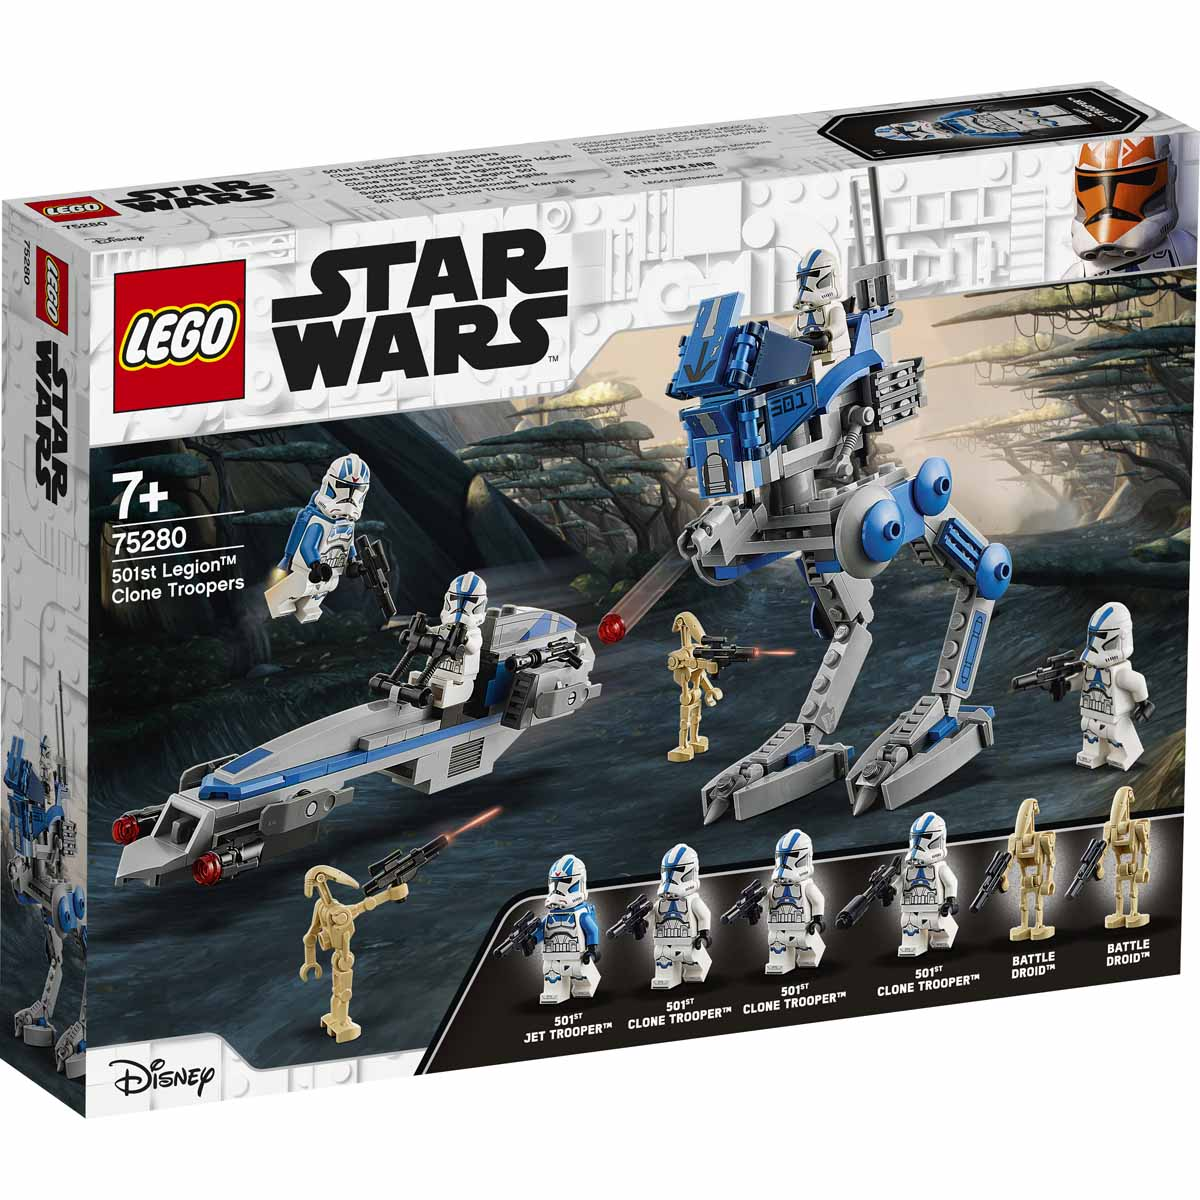 lego-star-wars-75280-501st-legion-clone-troopers (1)